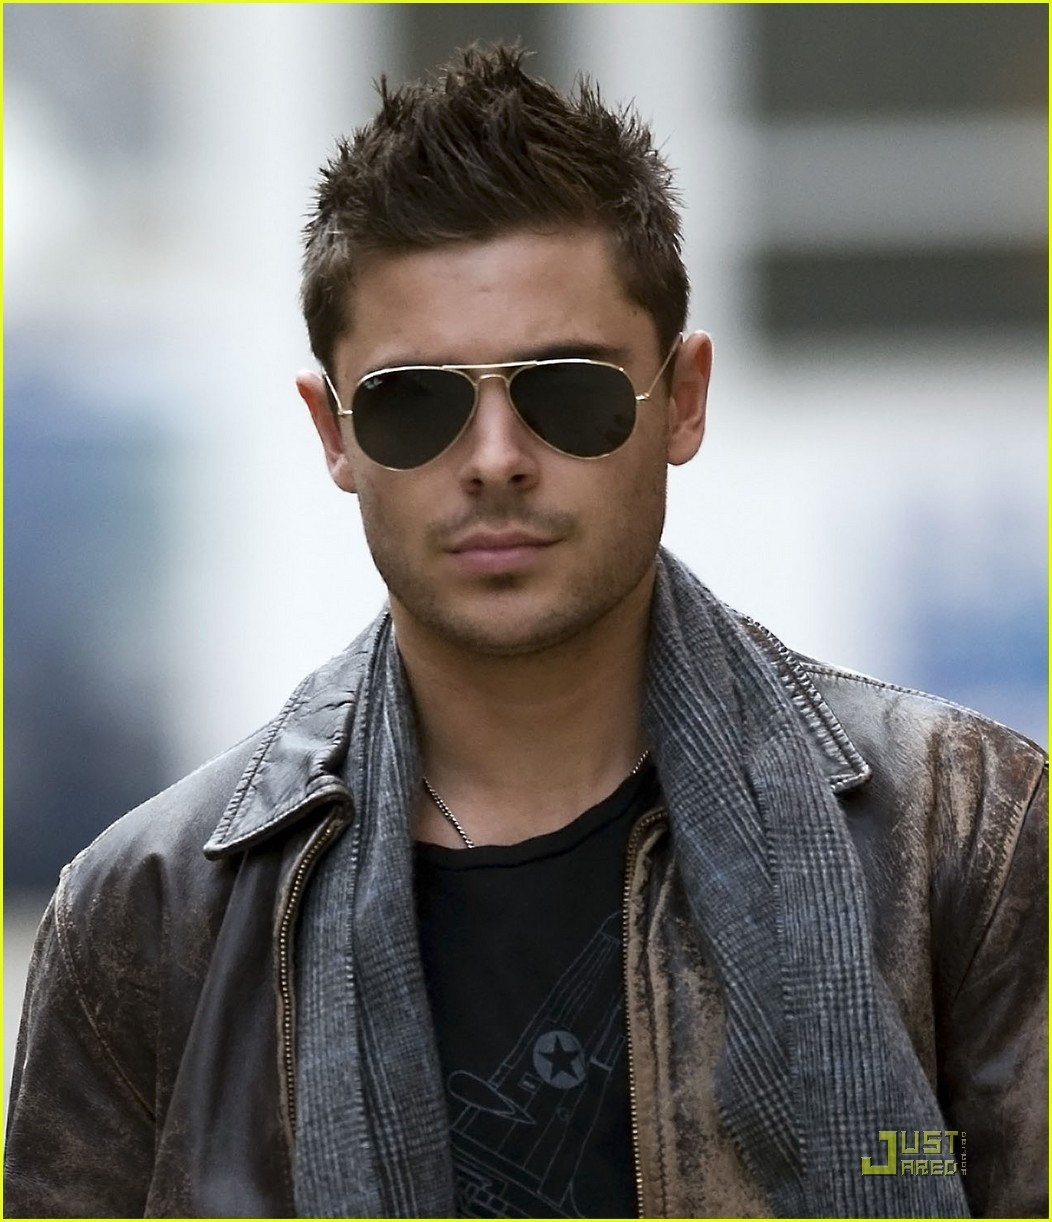 http://1.bp.blogspot.com/-PZm7Vrsx54M/T4KsaTAB6_I/AAAAAAAAAnk/AswSoLb46qs/s1600/Zac-on-set-New-Years-Eve-zac-efron-19812081-1052-1222.jpg